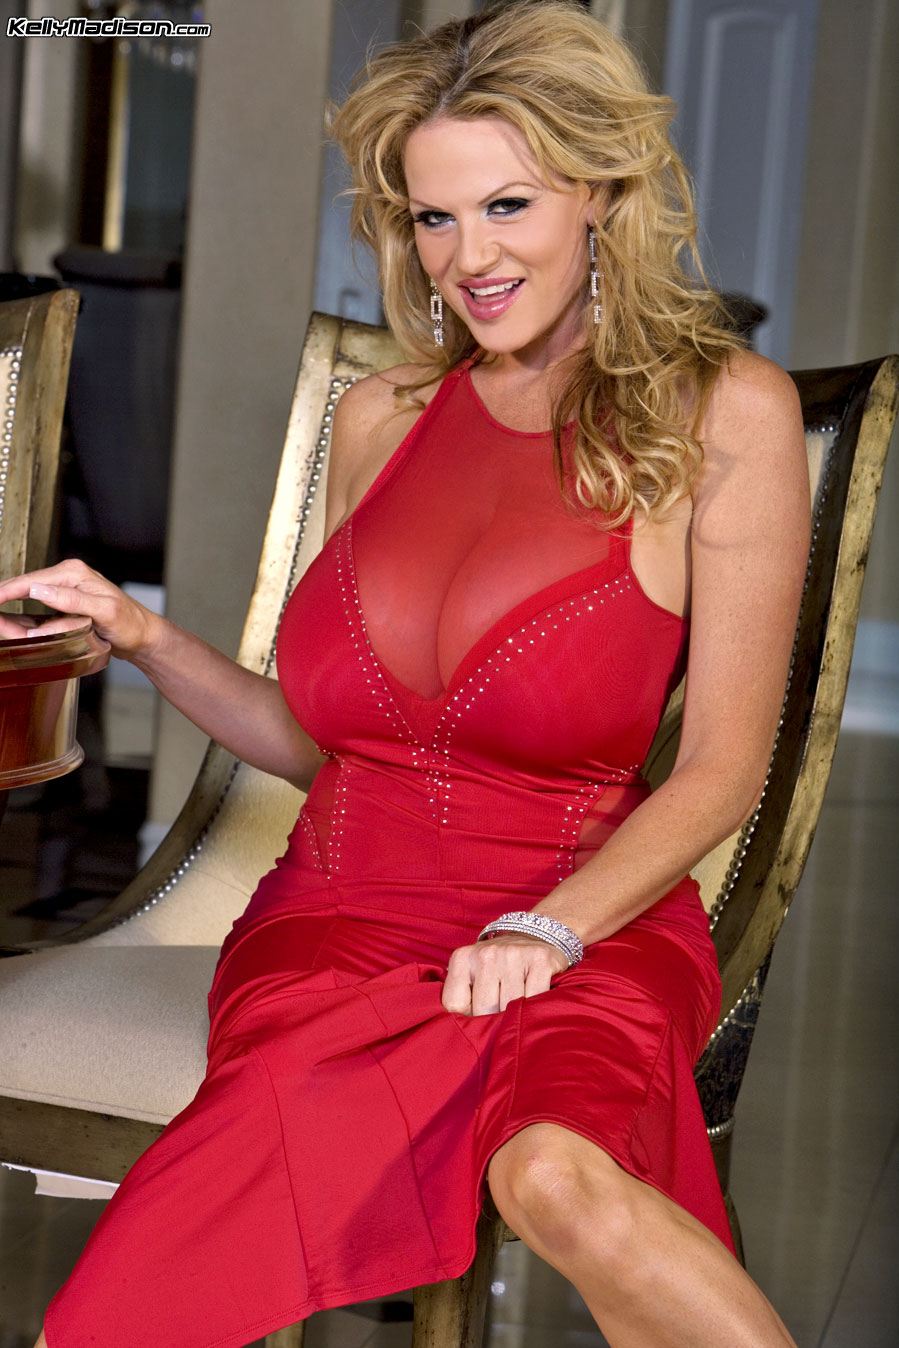 Kelly Madison Huge Tits in Red Minidress